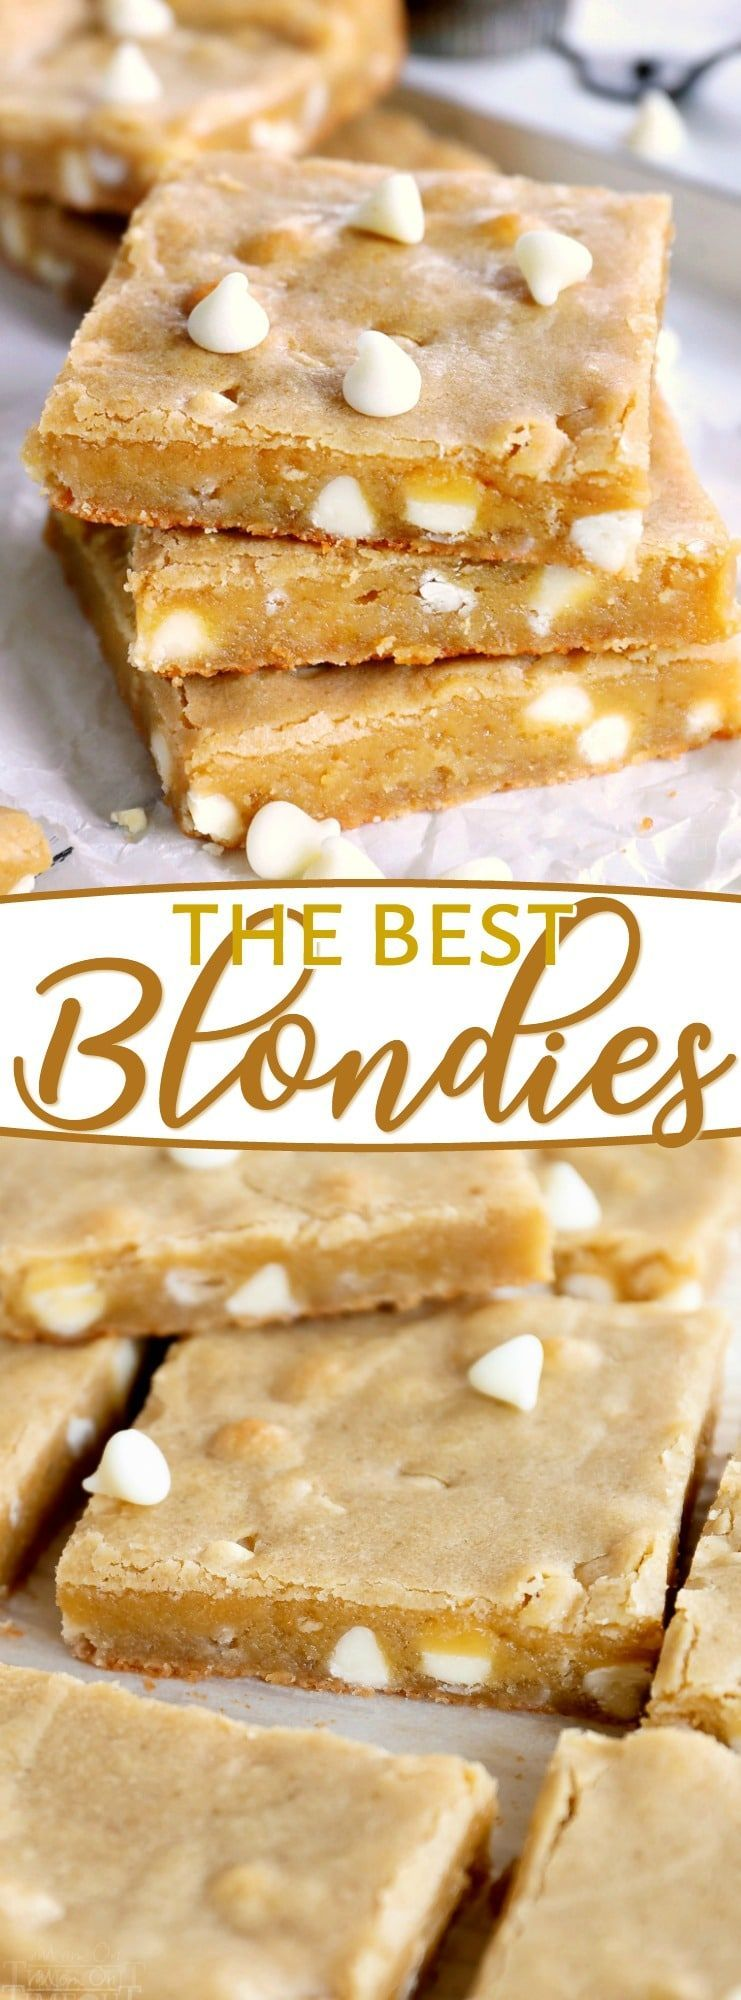 The Best Blondies I've ever had! This easy, one-bowl blondie recipe yields extra chewy, buttery, ri